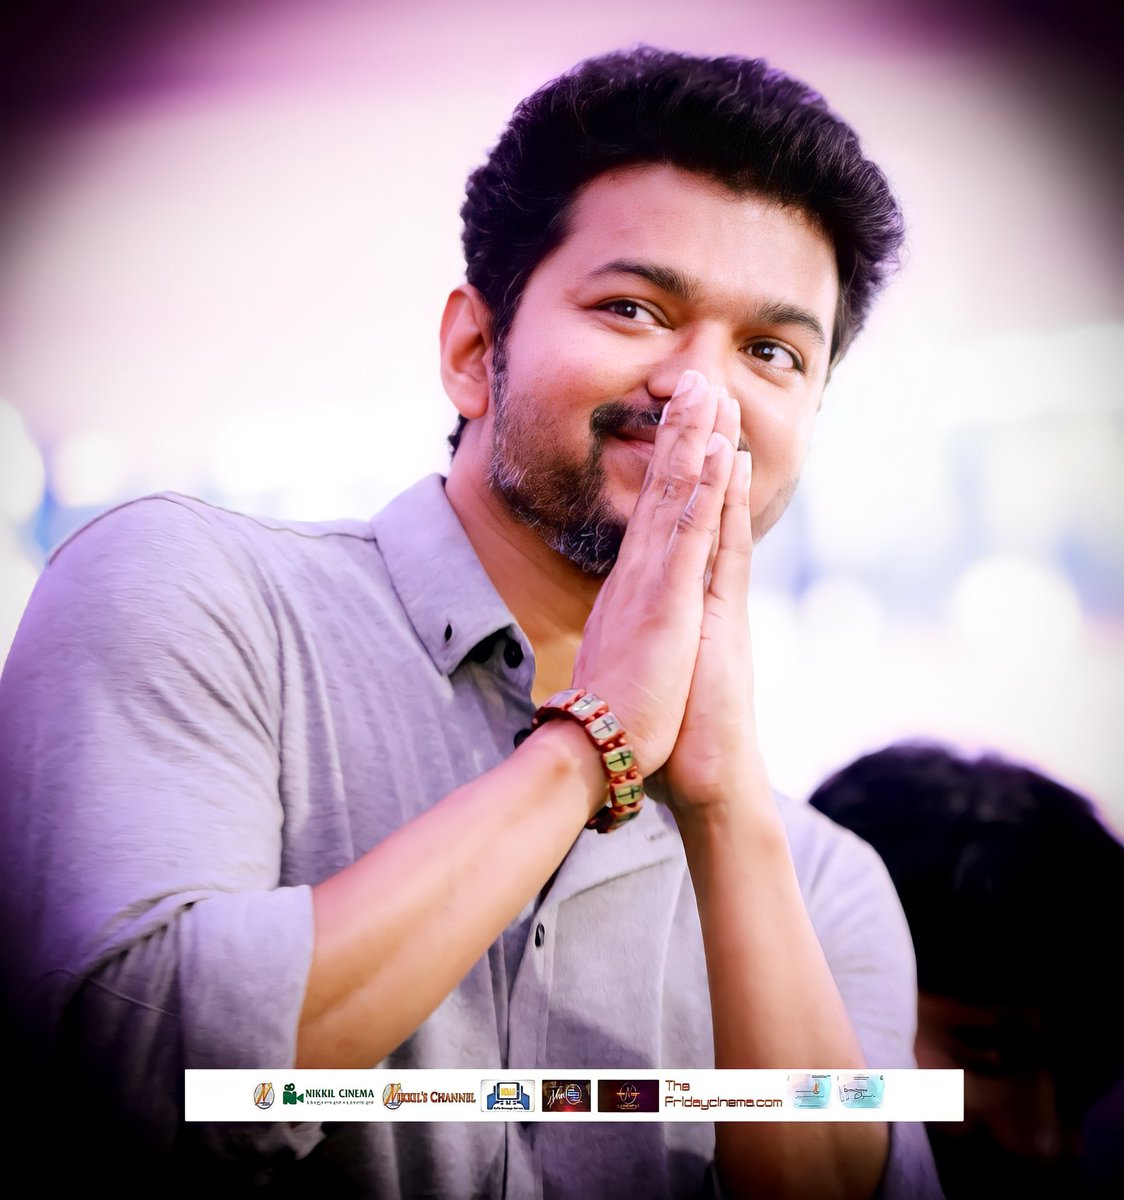 how to get #Twitter followers instantly @actorvijay #like #TwitterTips  need support🙏   #follobackinstantly #FolloForFolloBack 😃